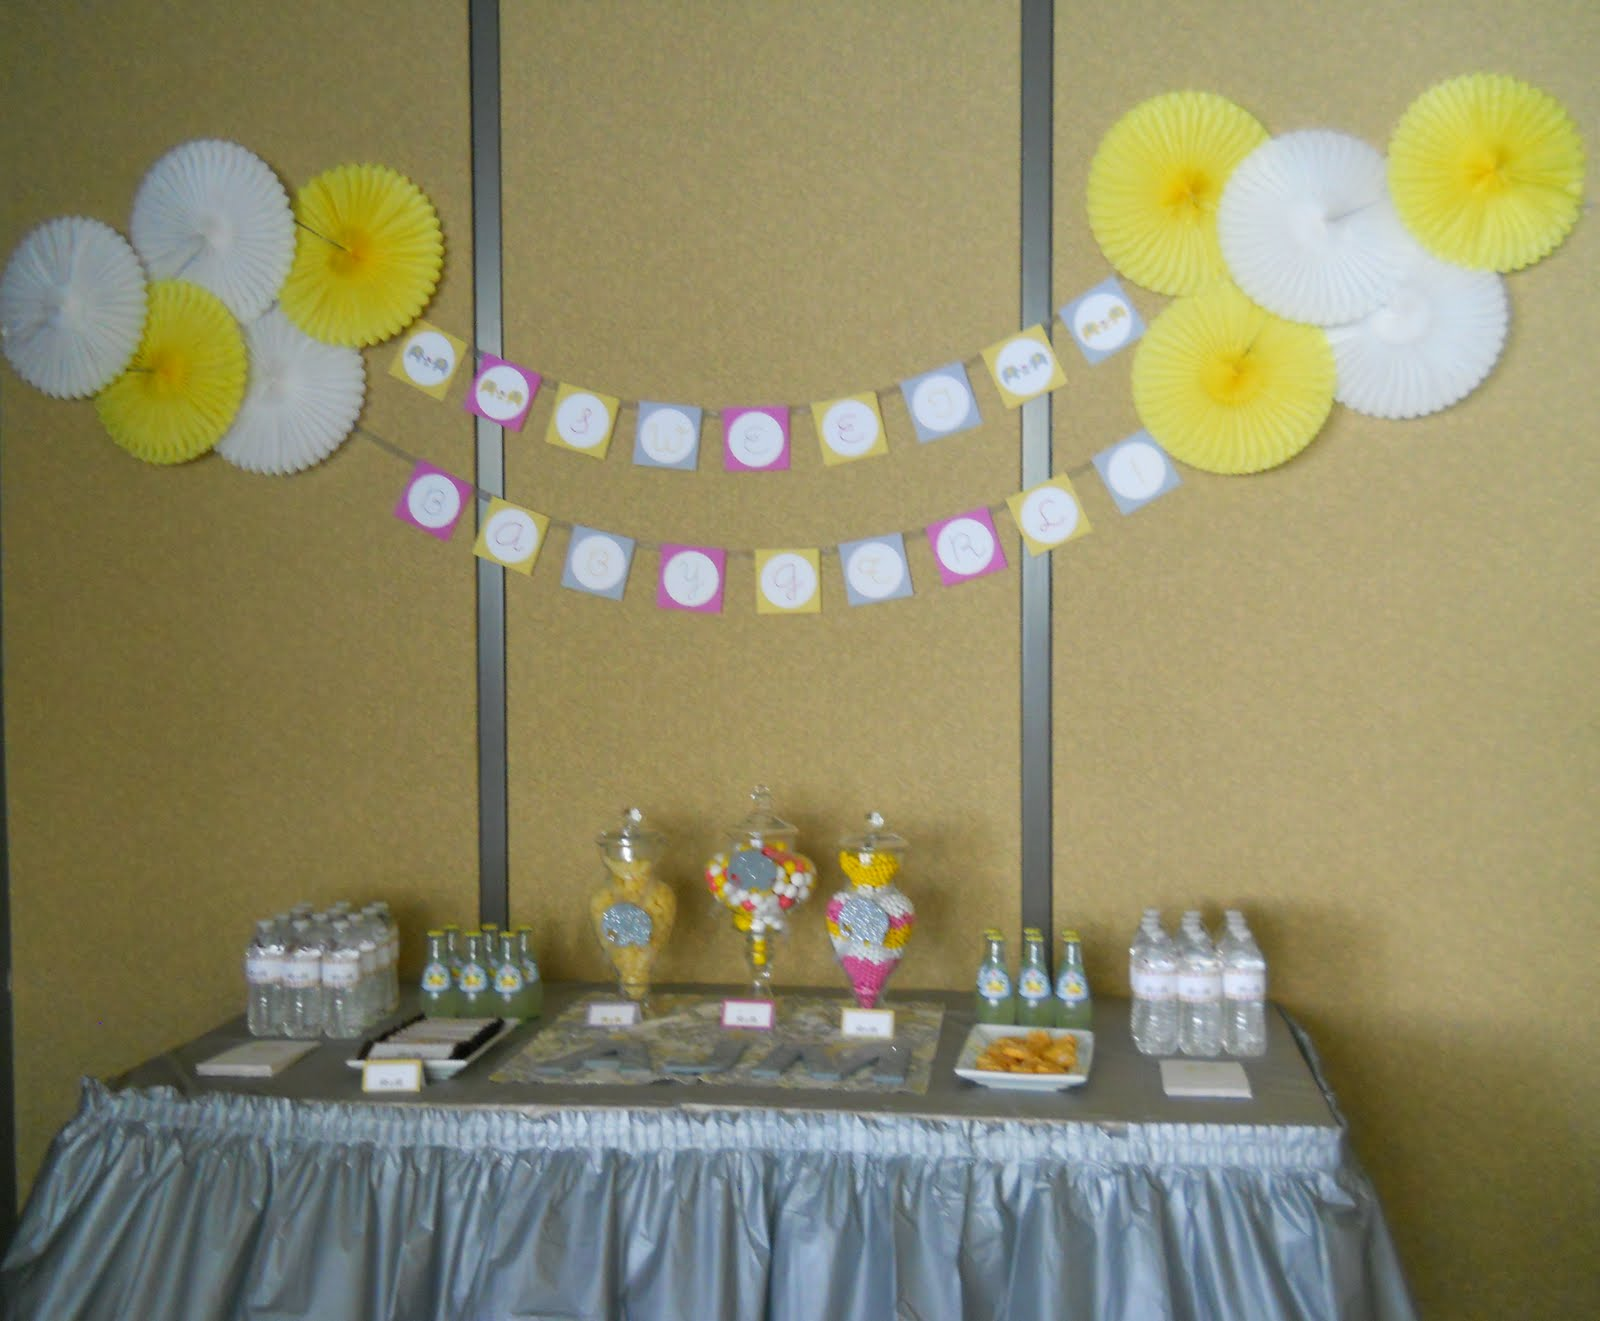 Home Improvements: baby shower decoration ideas